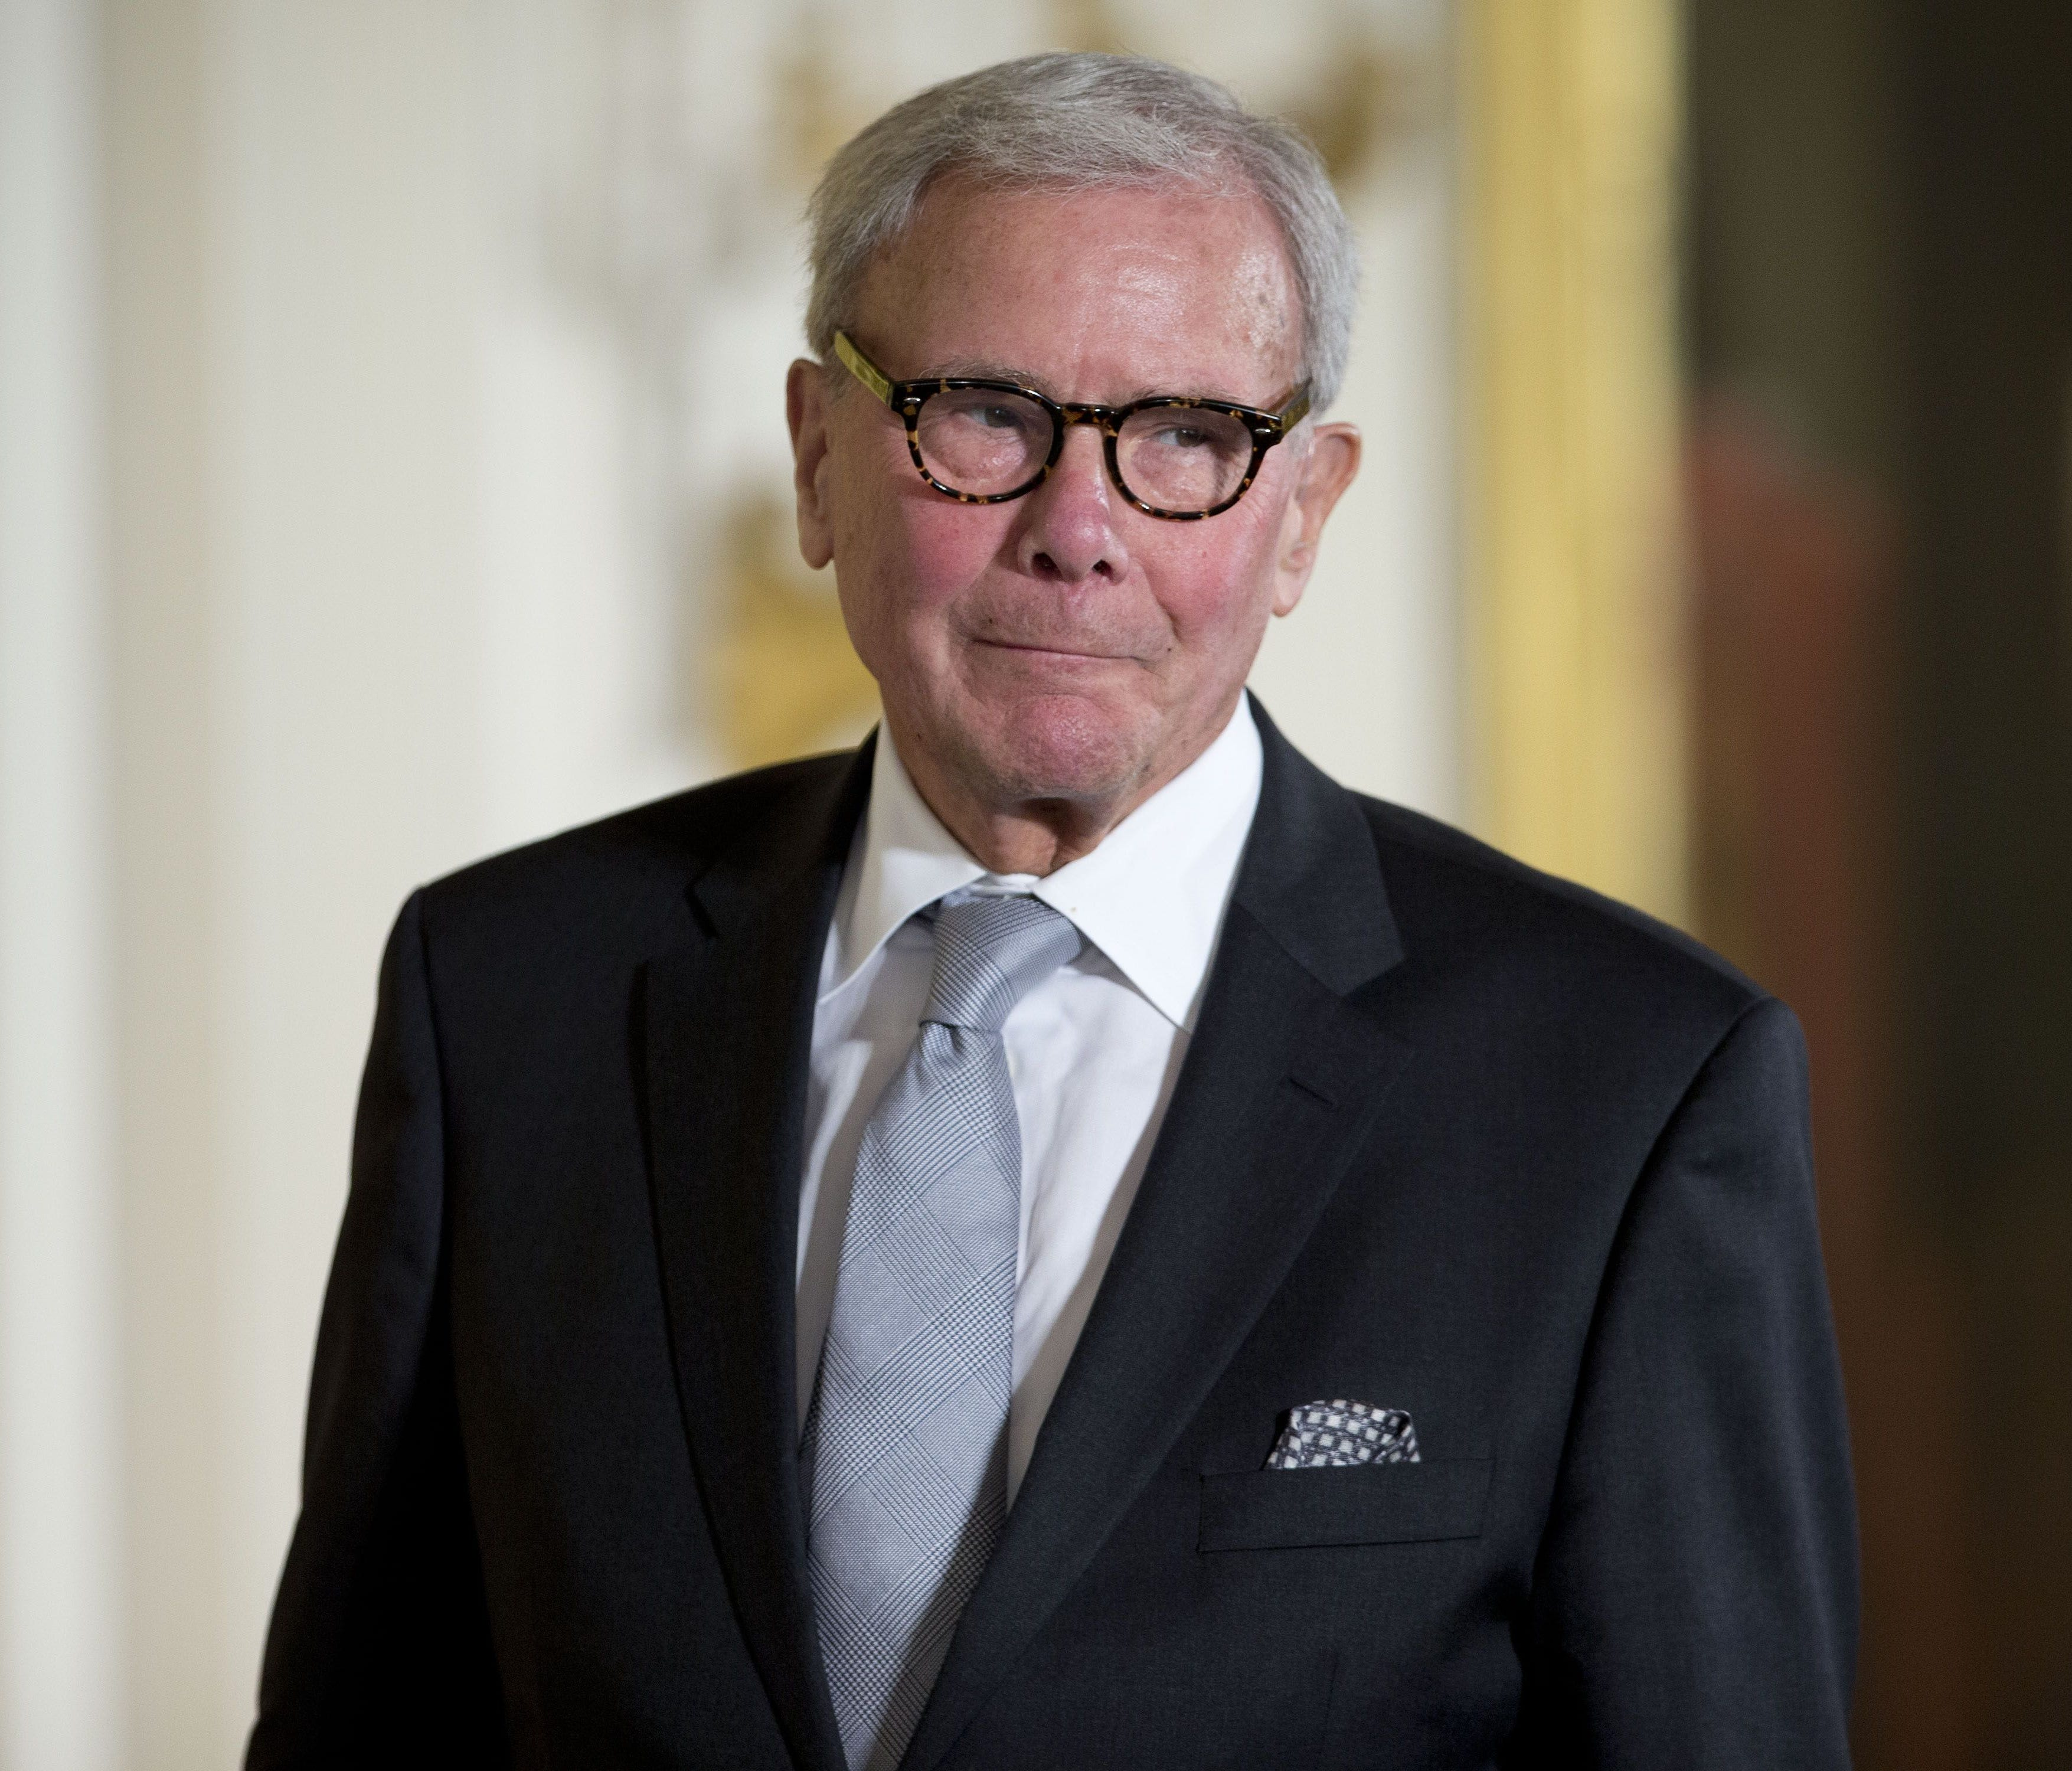 Tom Brokaw is pictured as receives the Presidential Medal of Freedom during a White House ceremony in 2014.